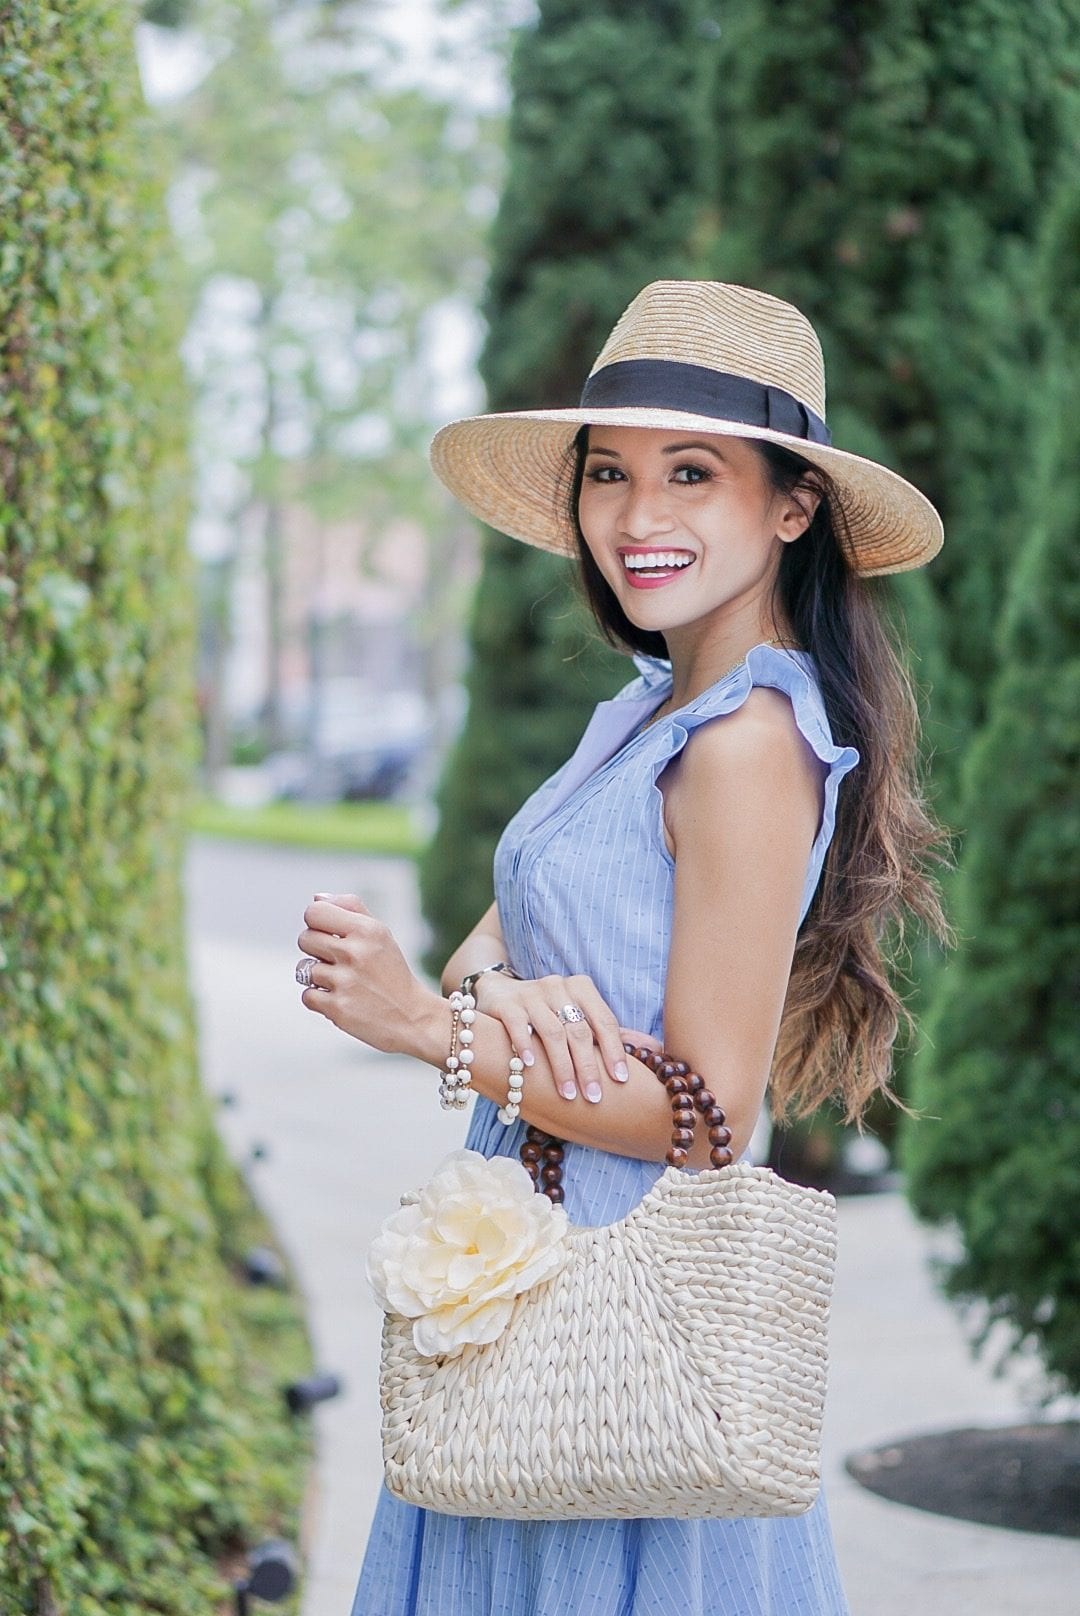 easter dress, baby blue dress, spring dress, ruffle sleeve, pintuck dress, straw hat, straw bag, soludos wedges, espadrille wedges, spring style, spring fashion, Easter